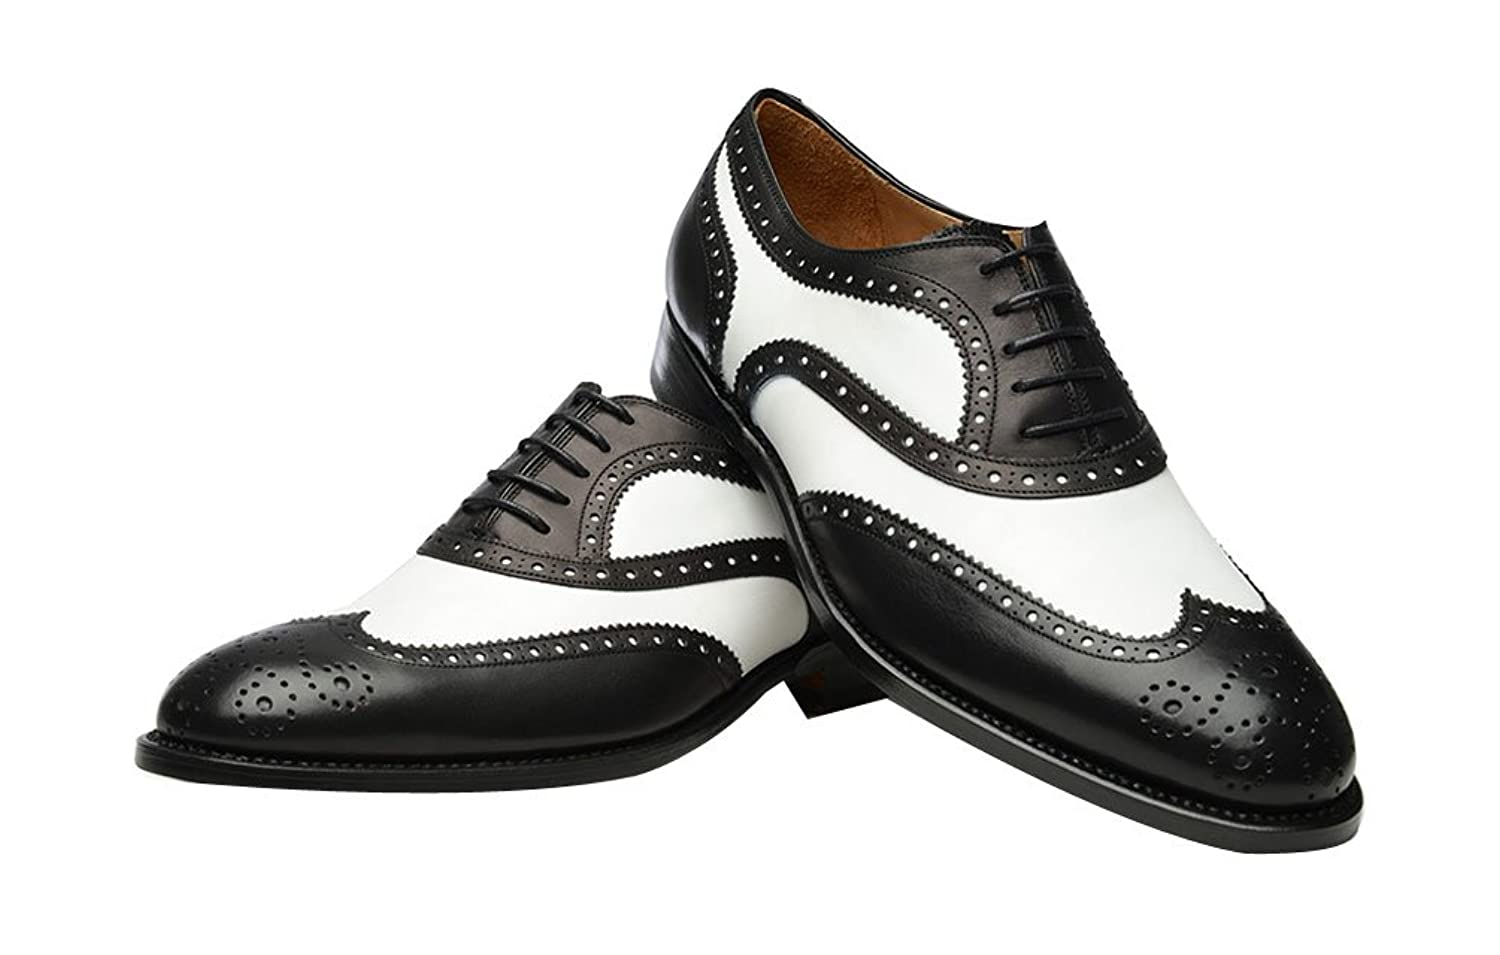 1940s Mens Shoes | Gangster, Spectator, Black and White Shoes ROYAL WIND Geninue Leather Spectator Shoes Mens Black White Lace up Wing Tip Perforated Dress Shoes $79.99 AT vintagedancer.com